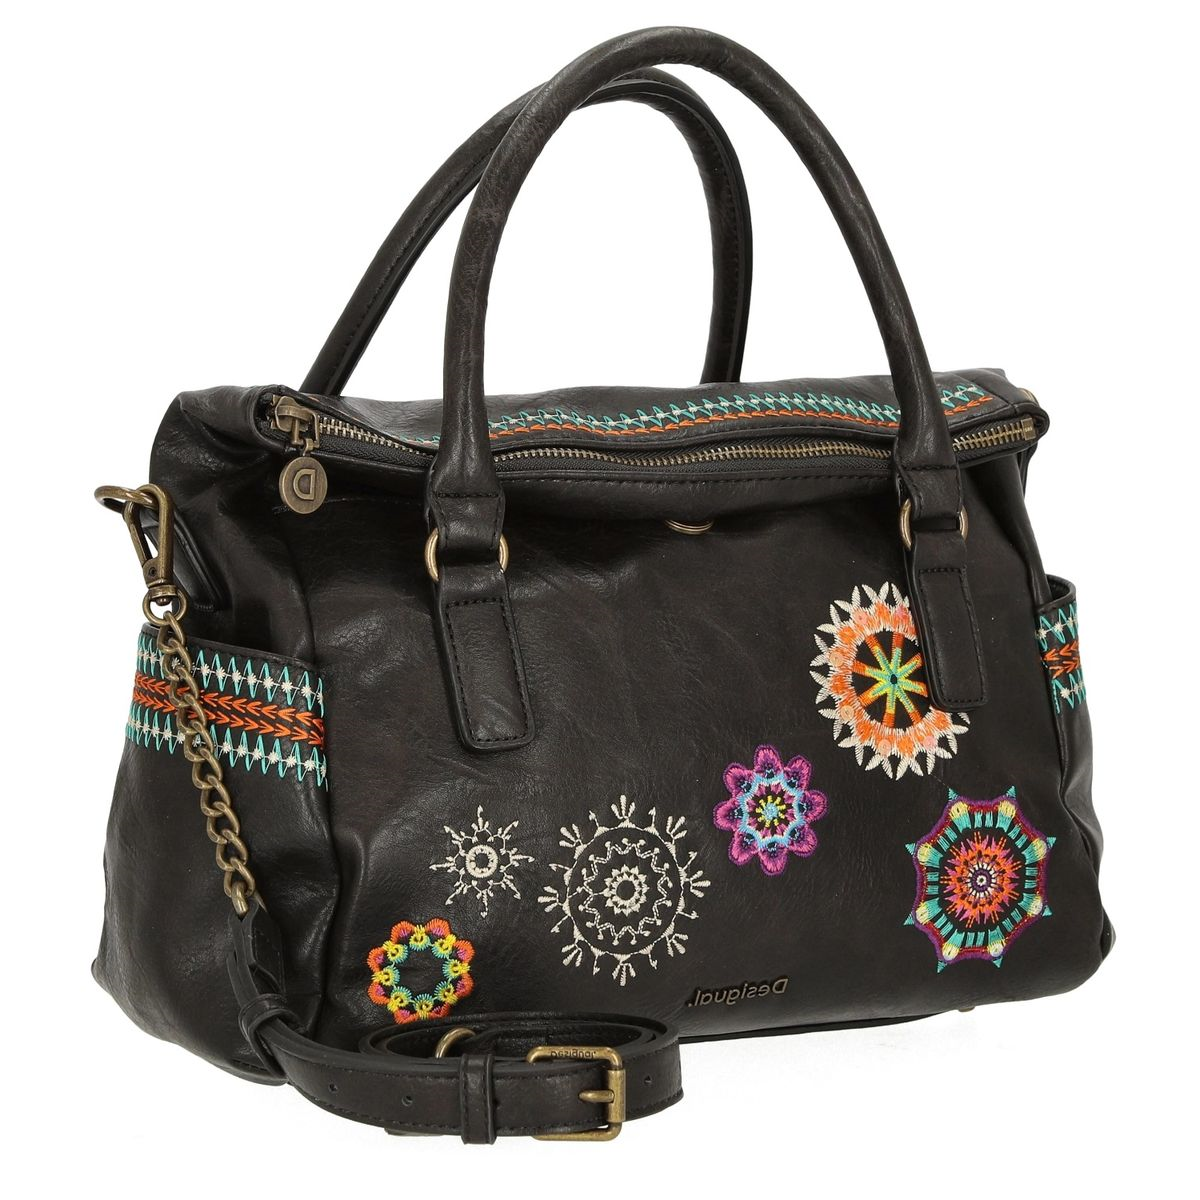 NAYA TRAP TOTE BOLS_CARLINA LOVERTY:NOIR/SIMILI CUIR/TEXTILE//Noir